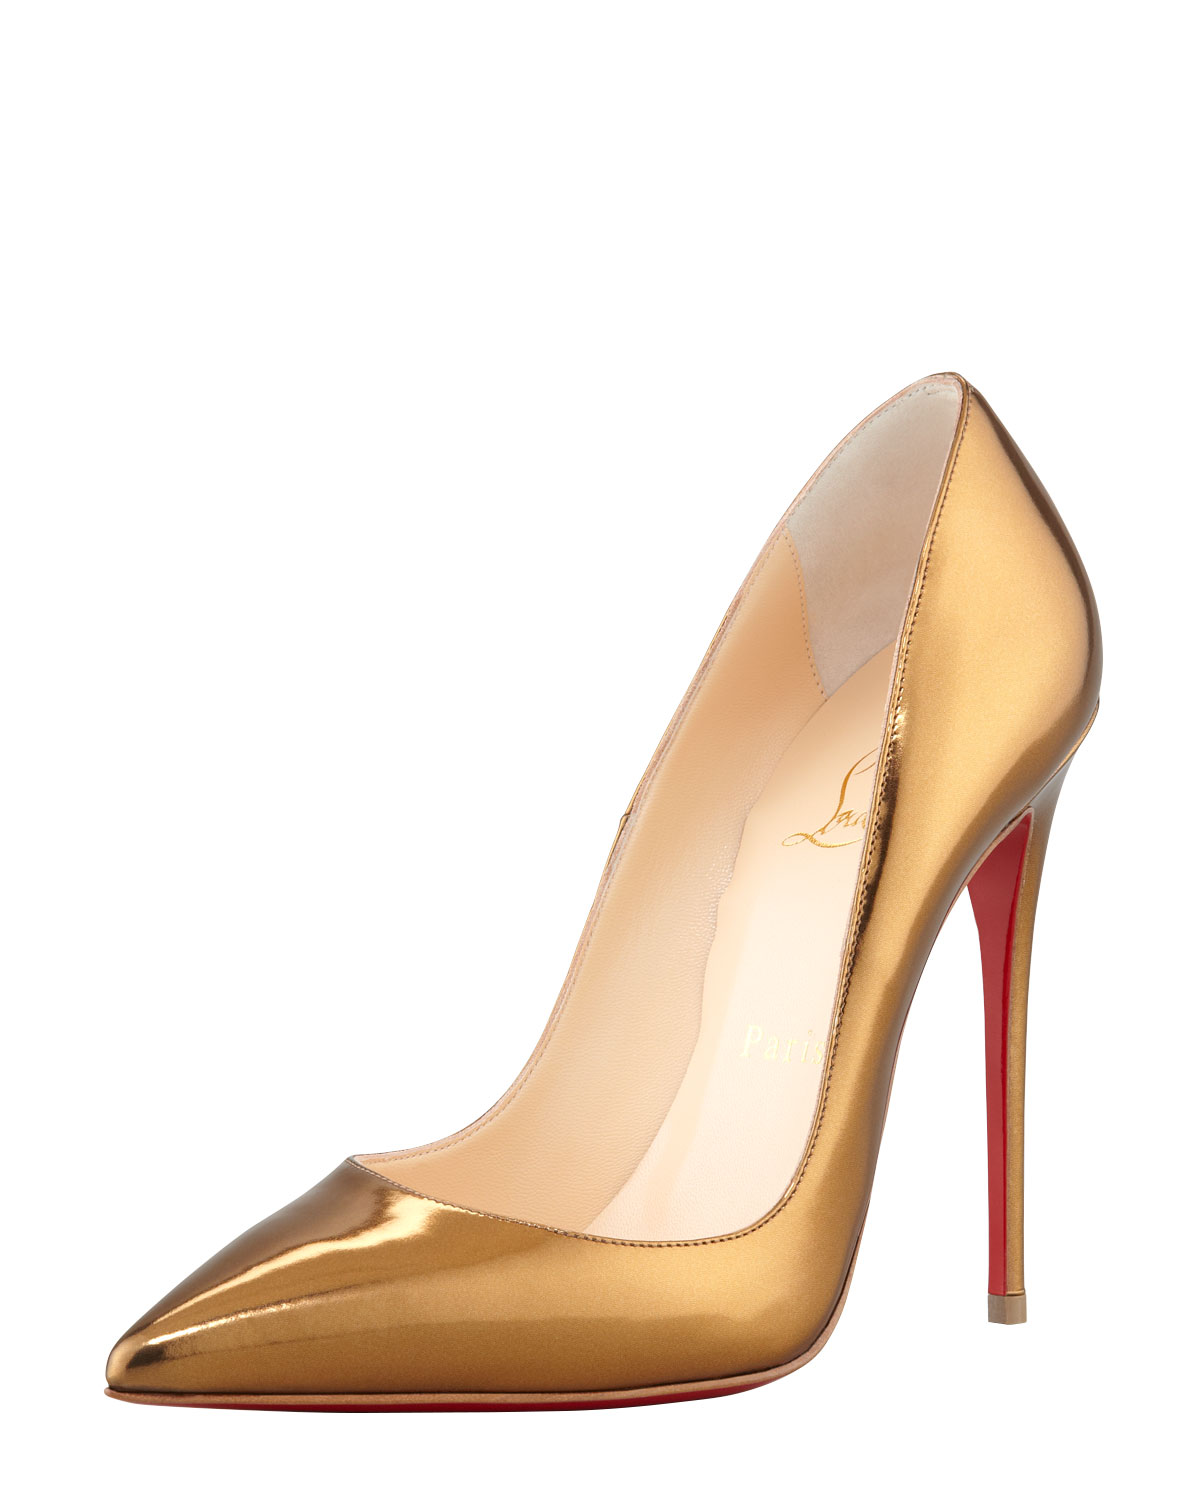 fcb9891a04c Gallery. Previously sold at  Bergdorf Goodman · Women s Christian Louboutin  So Kate ...